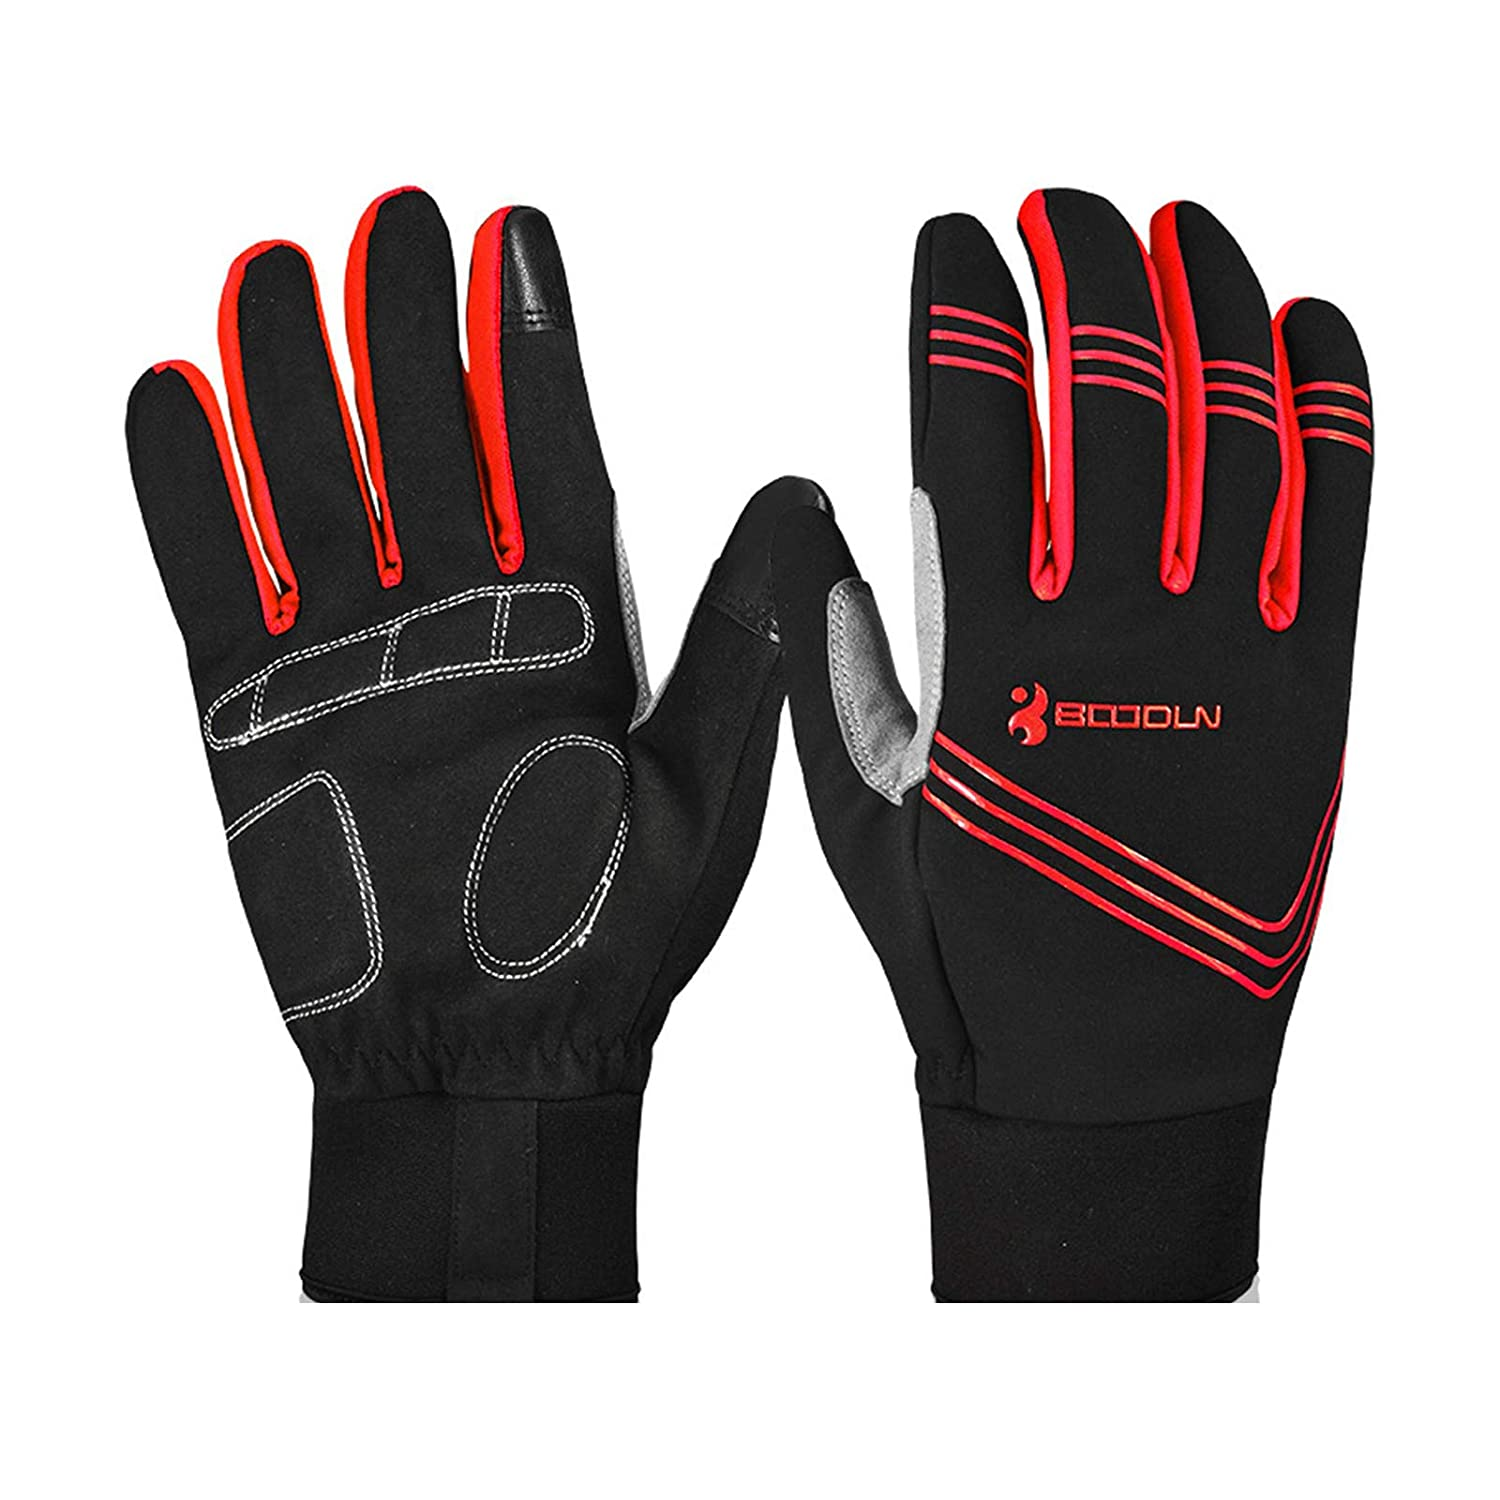 Aokarry Gloves Yellow Cycling Motocycle Gloves Microfiber Winter GlovesRed Blue